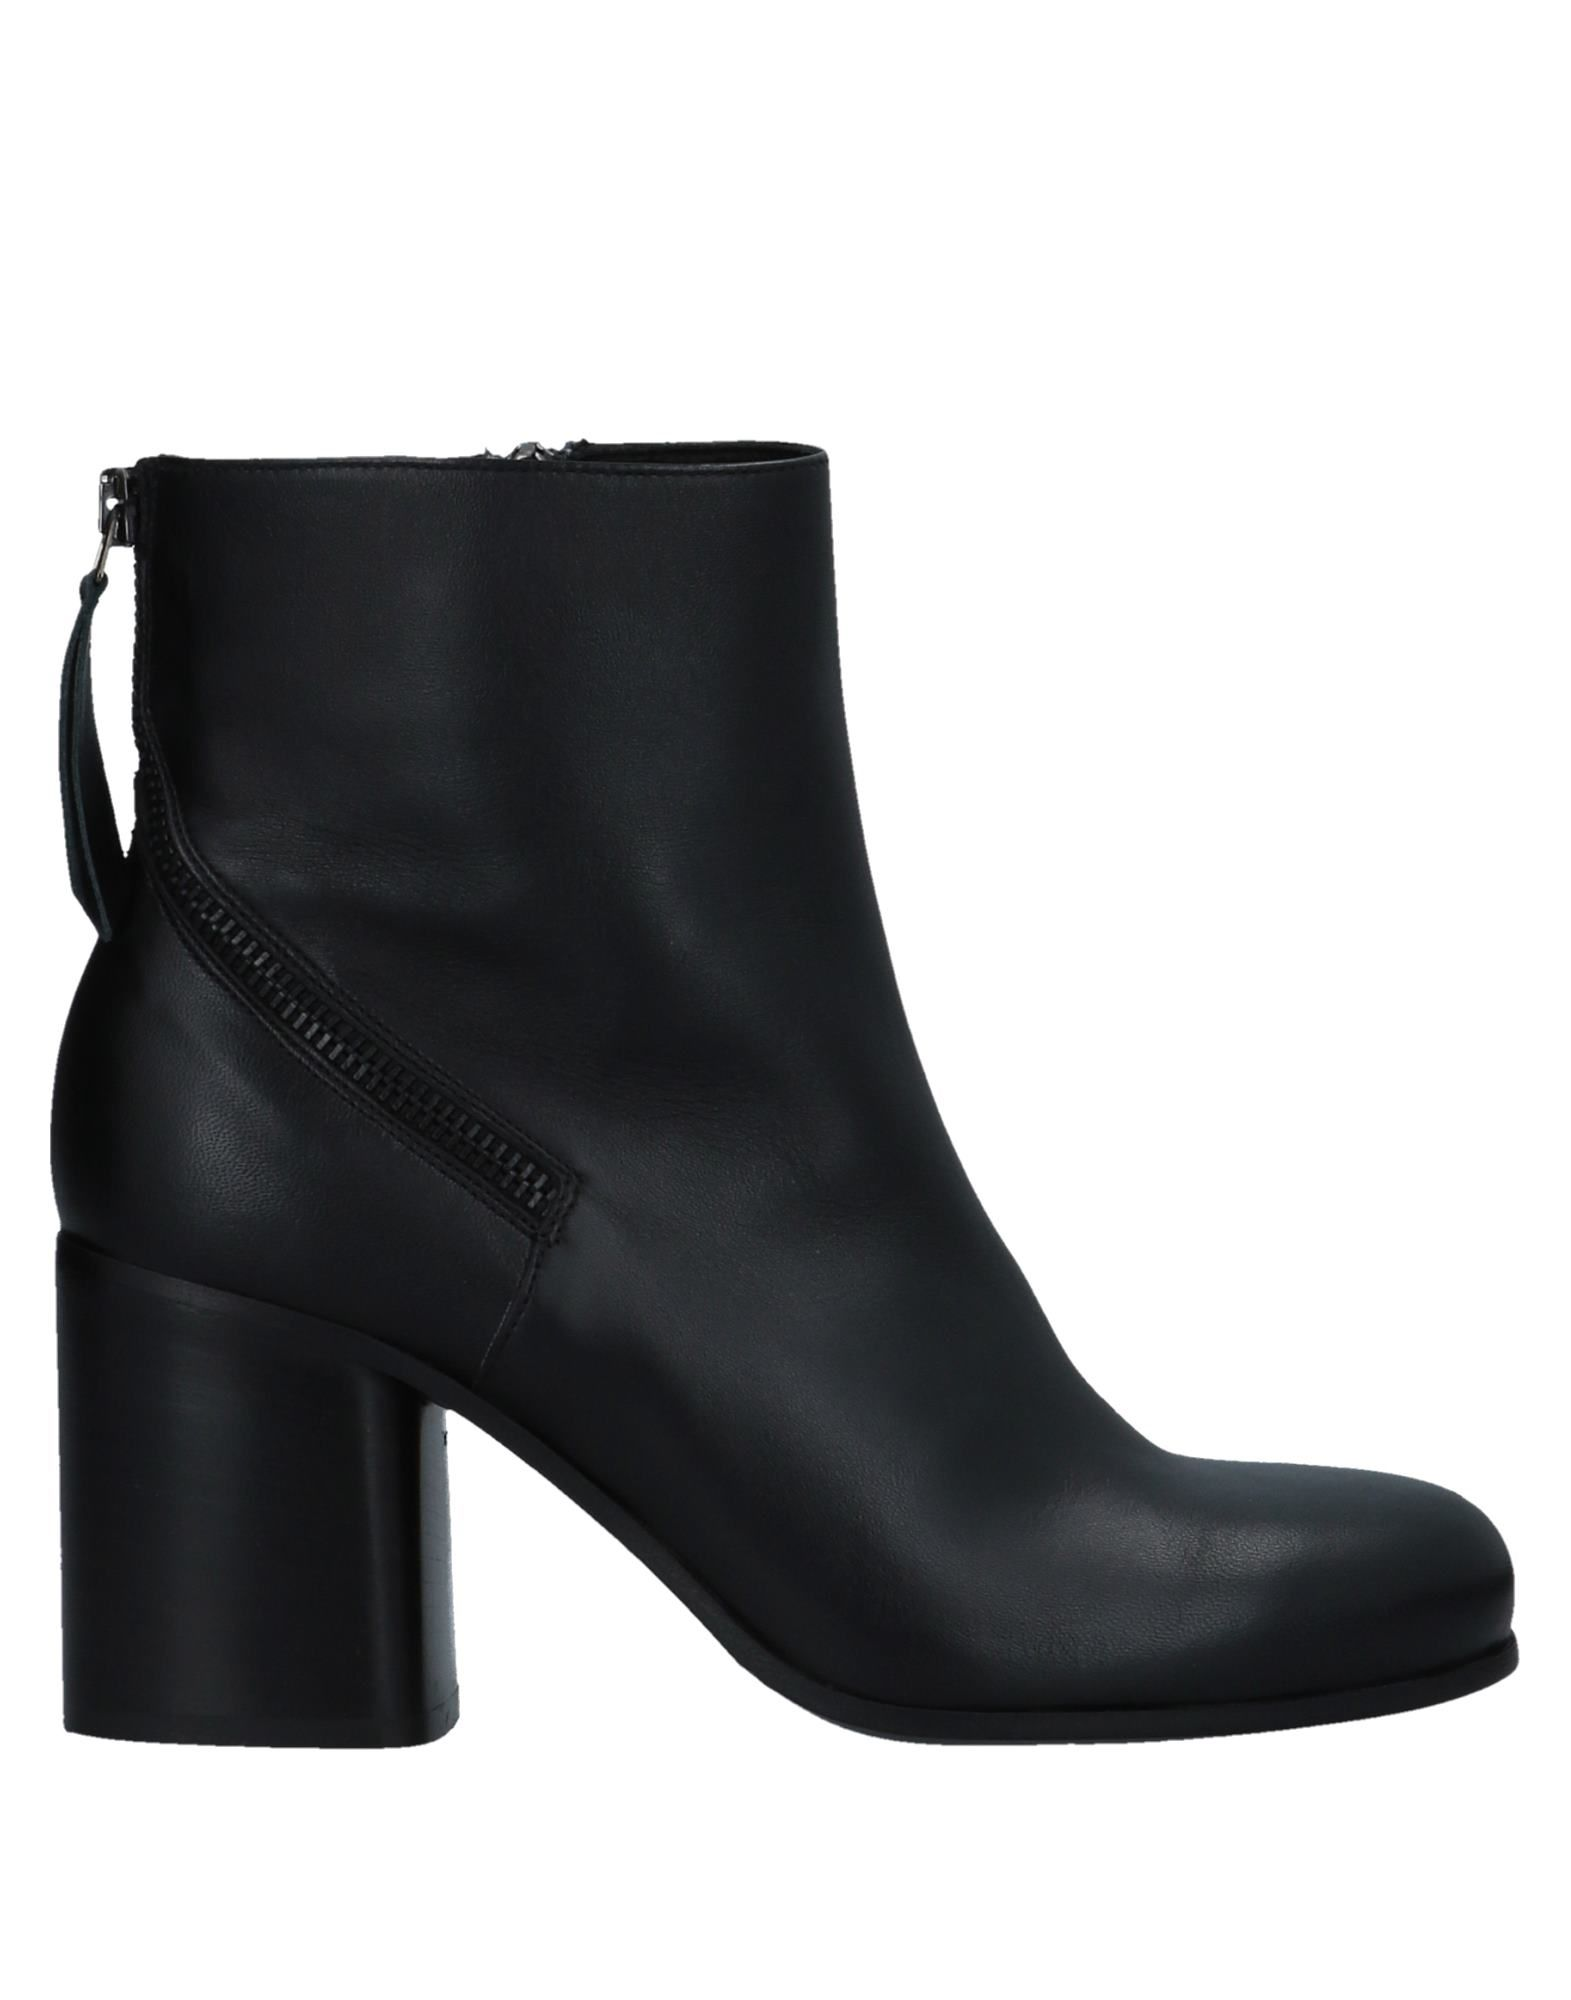 Alberto Fermani Ankle Boot Boot Boot - Women Alberto Fermani Ankle Boots online on  United Kingdom - 11535212HK 7230b2